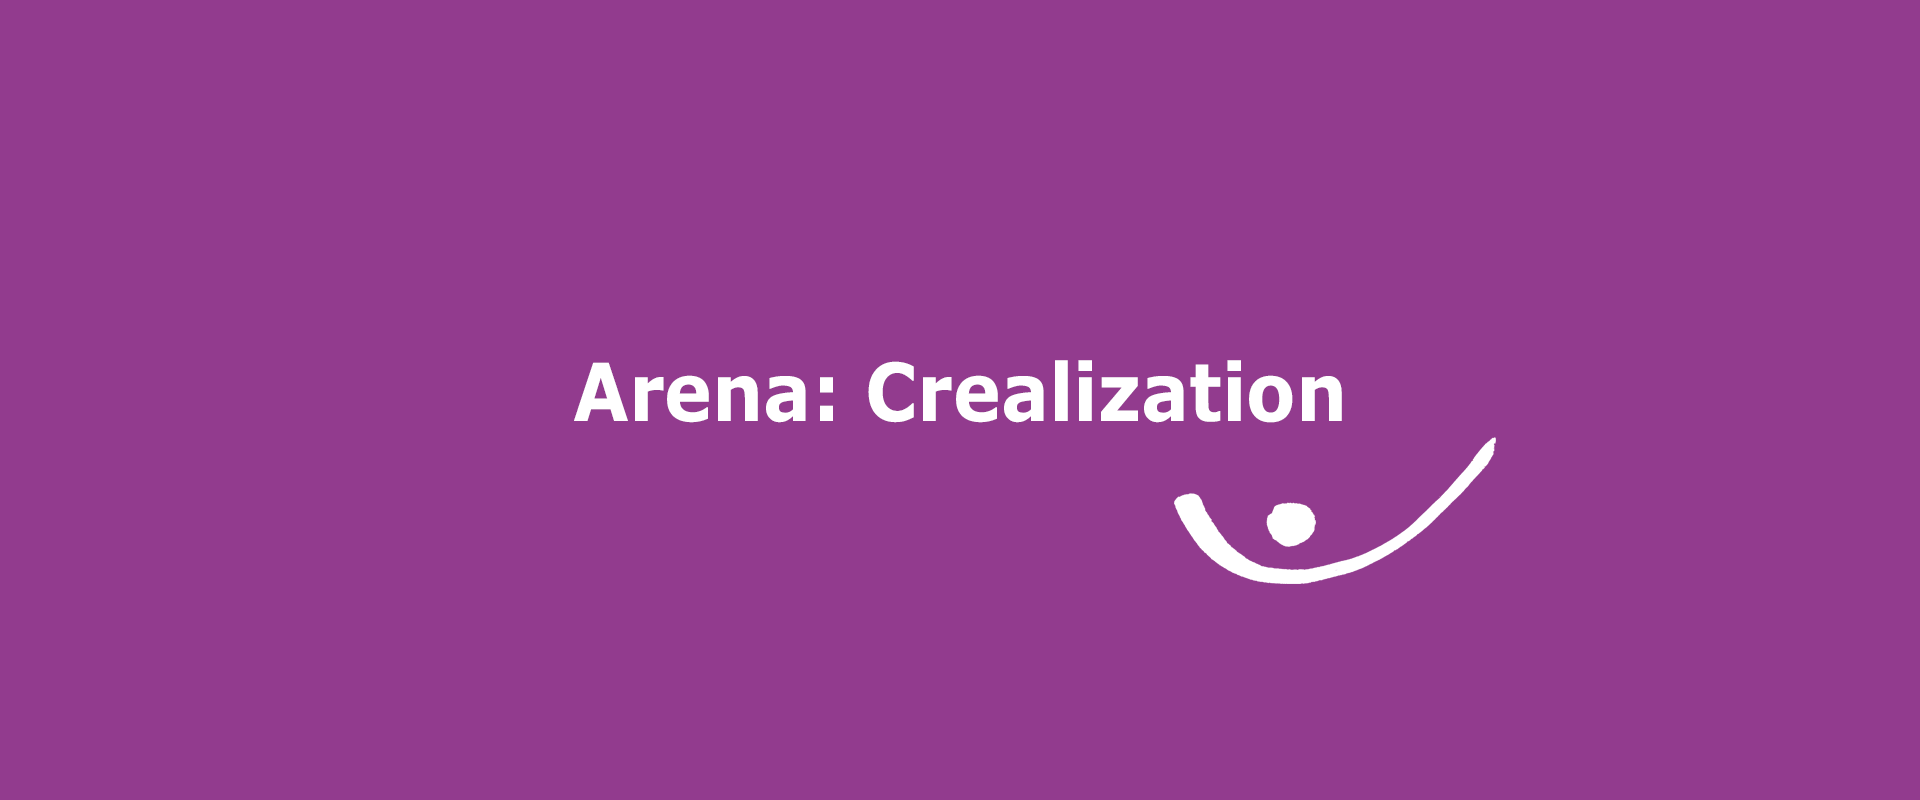 Ship of a new story: Arena Crealization